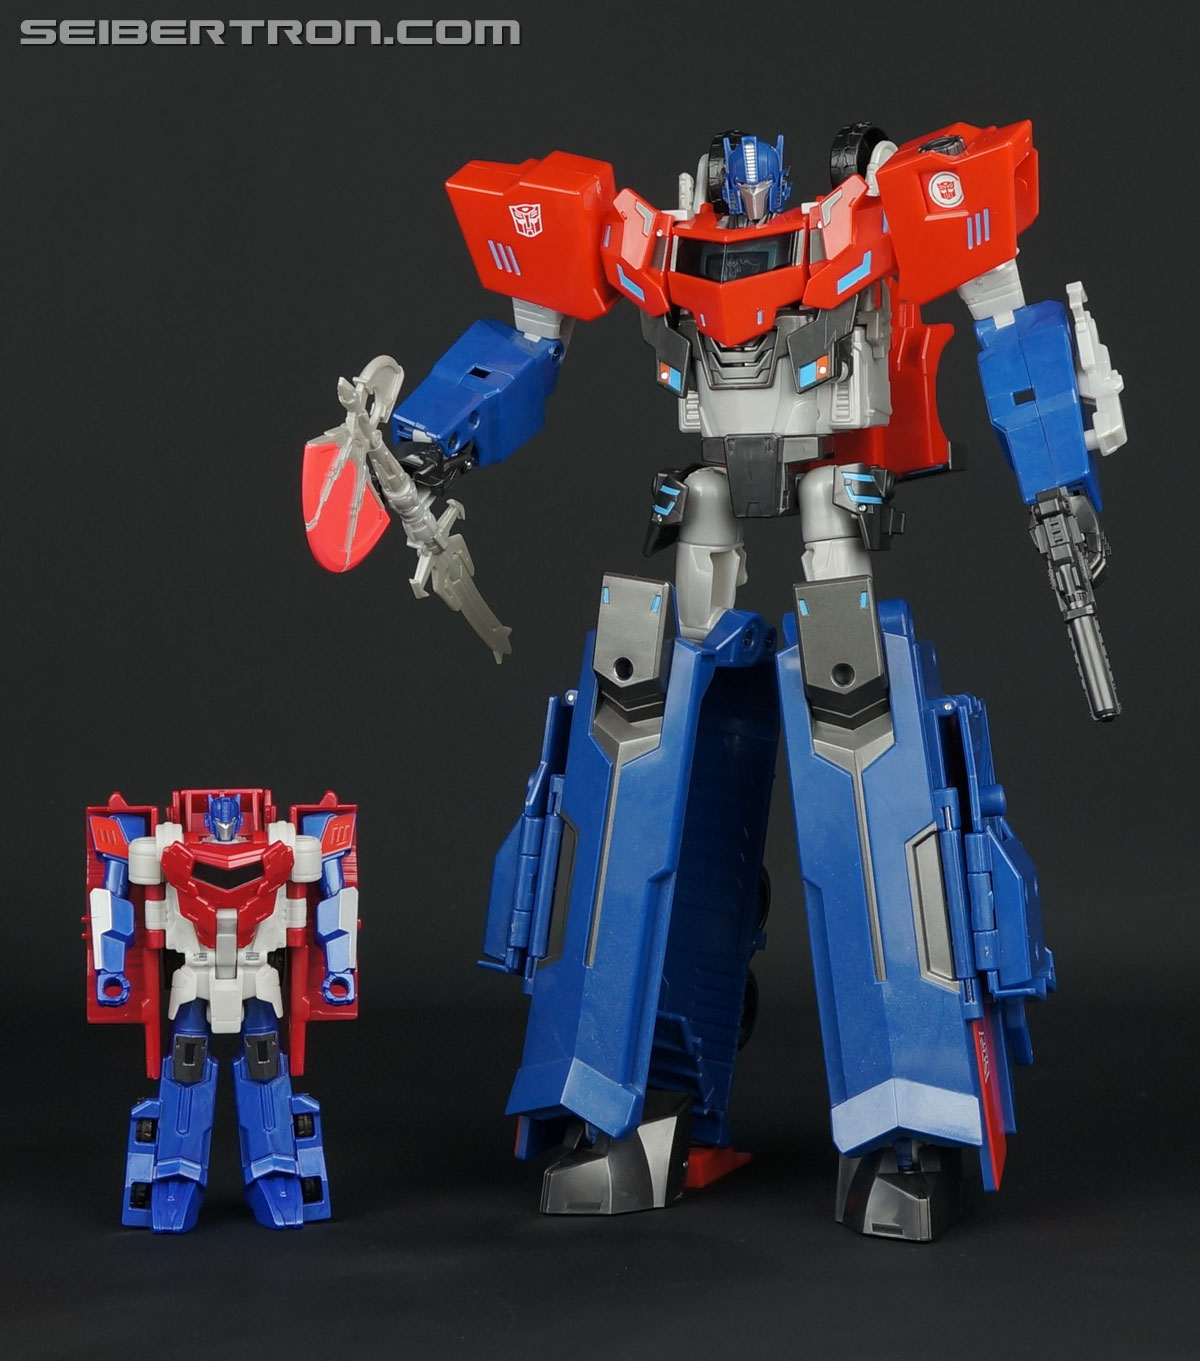 Transformers: Robots In Disguise Optimus Prime (Image #81 of 81)